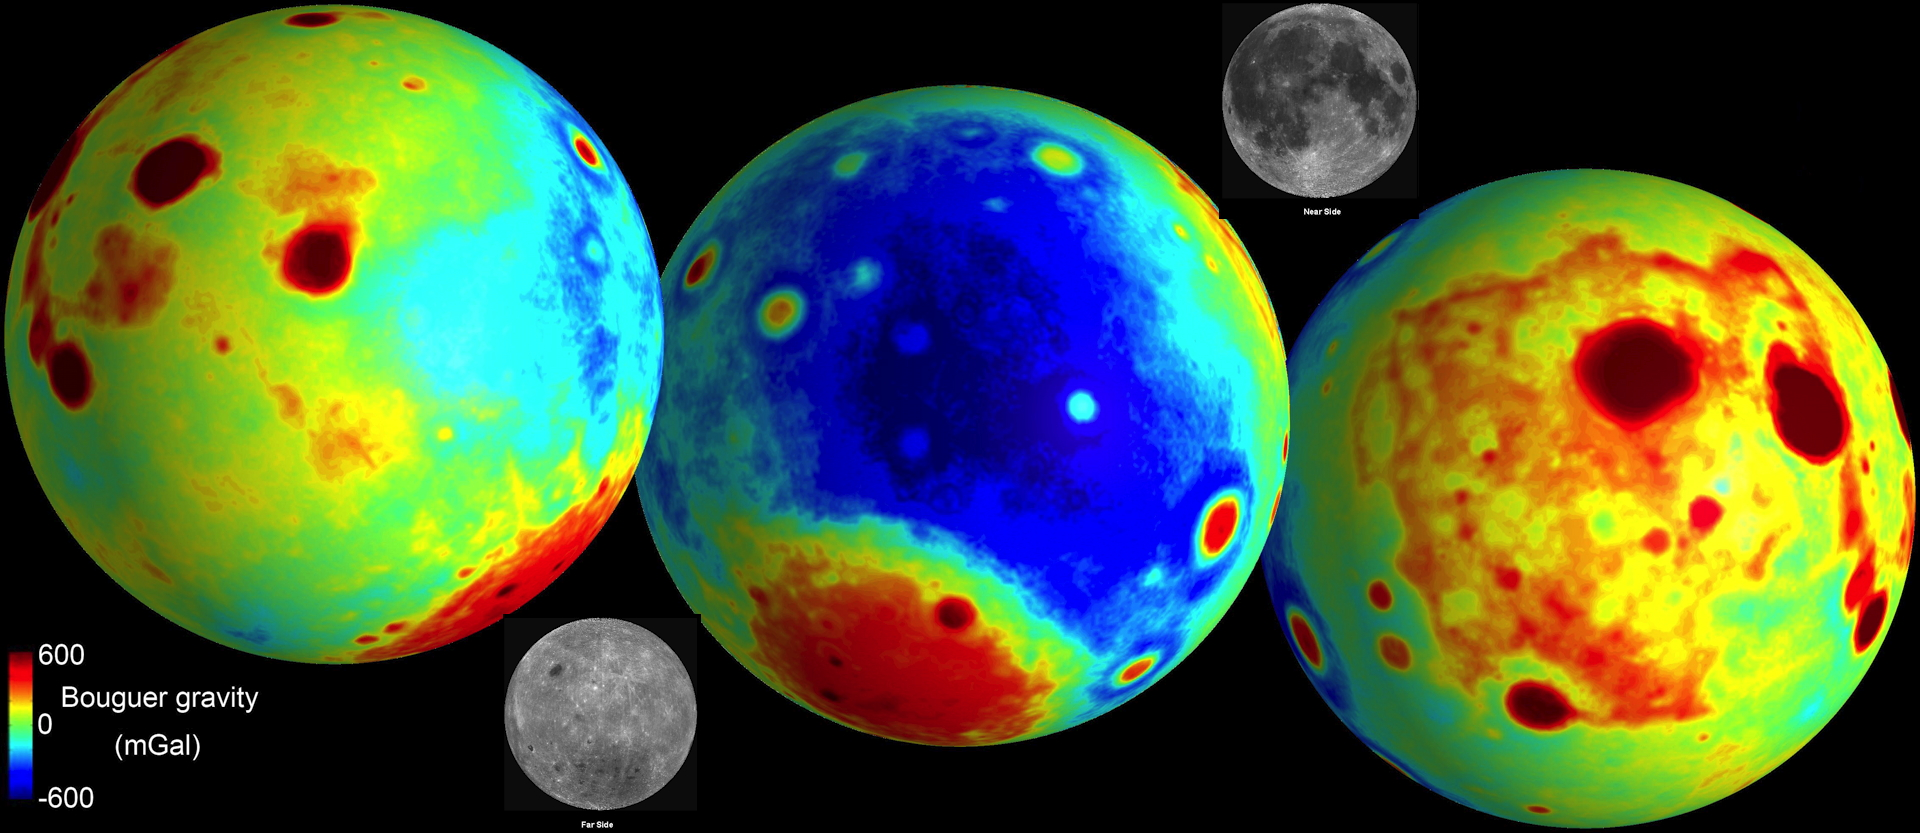 lunar bouger gravity map for near and far side of moon